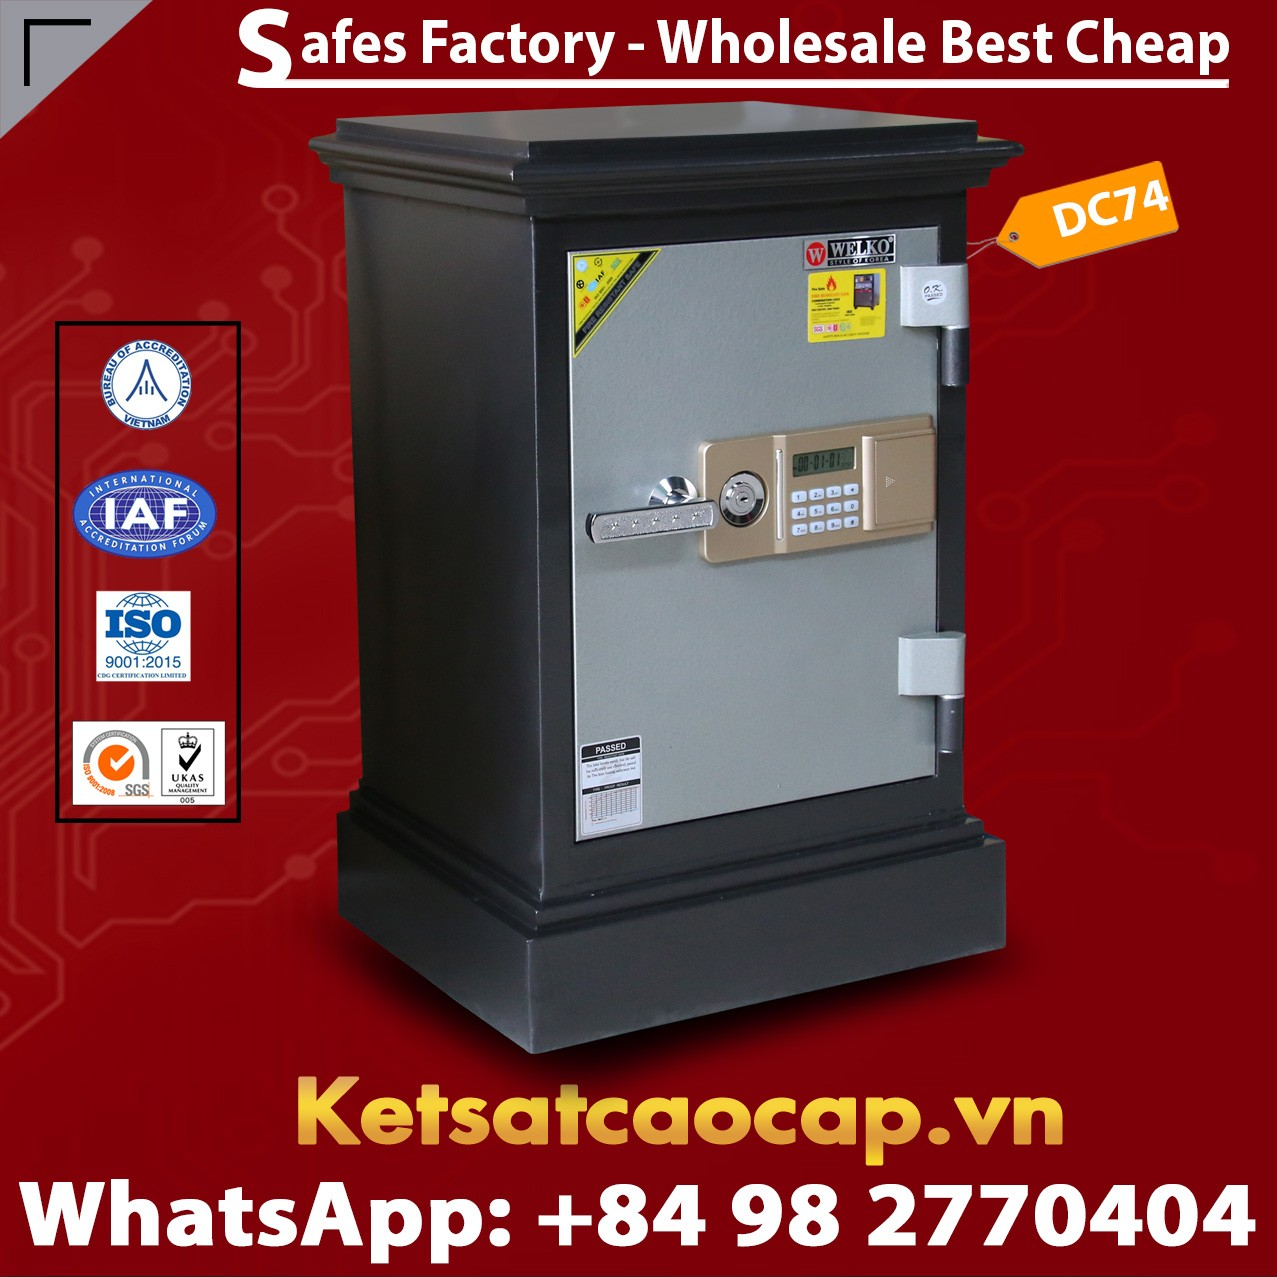 Home Safes Wholesale Suppliers